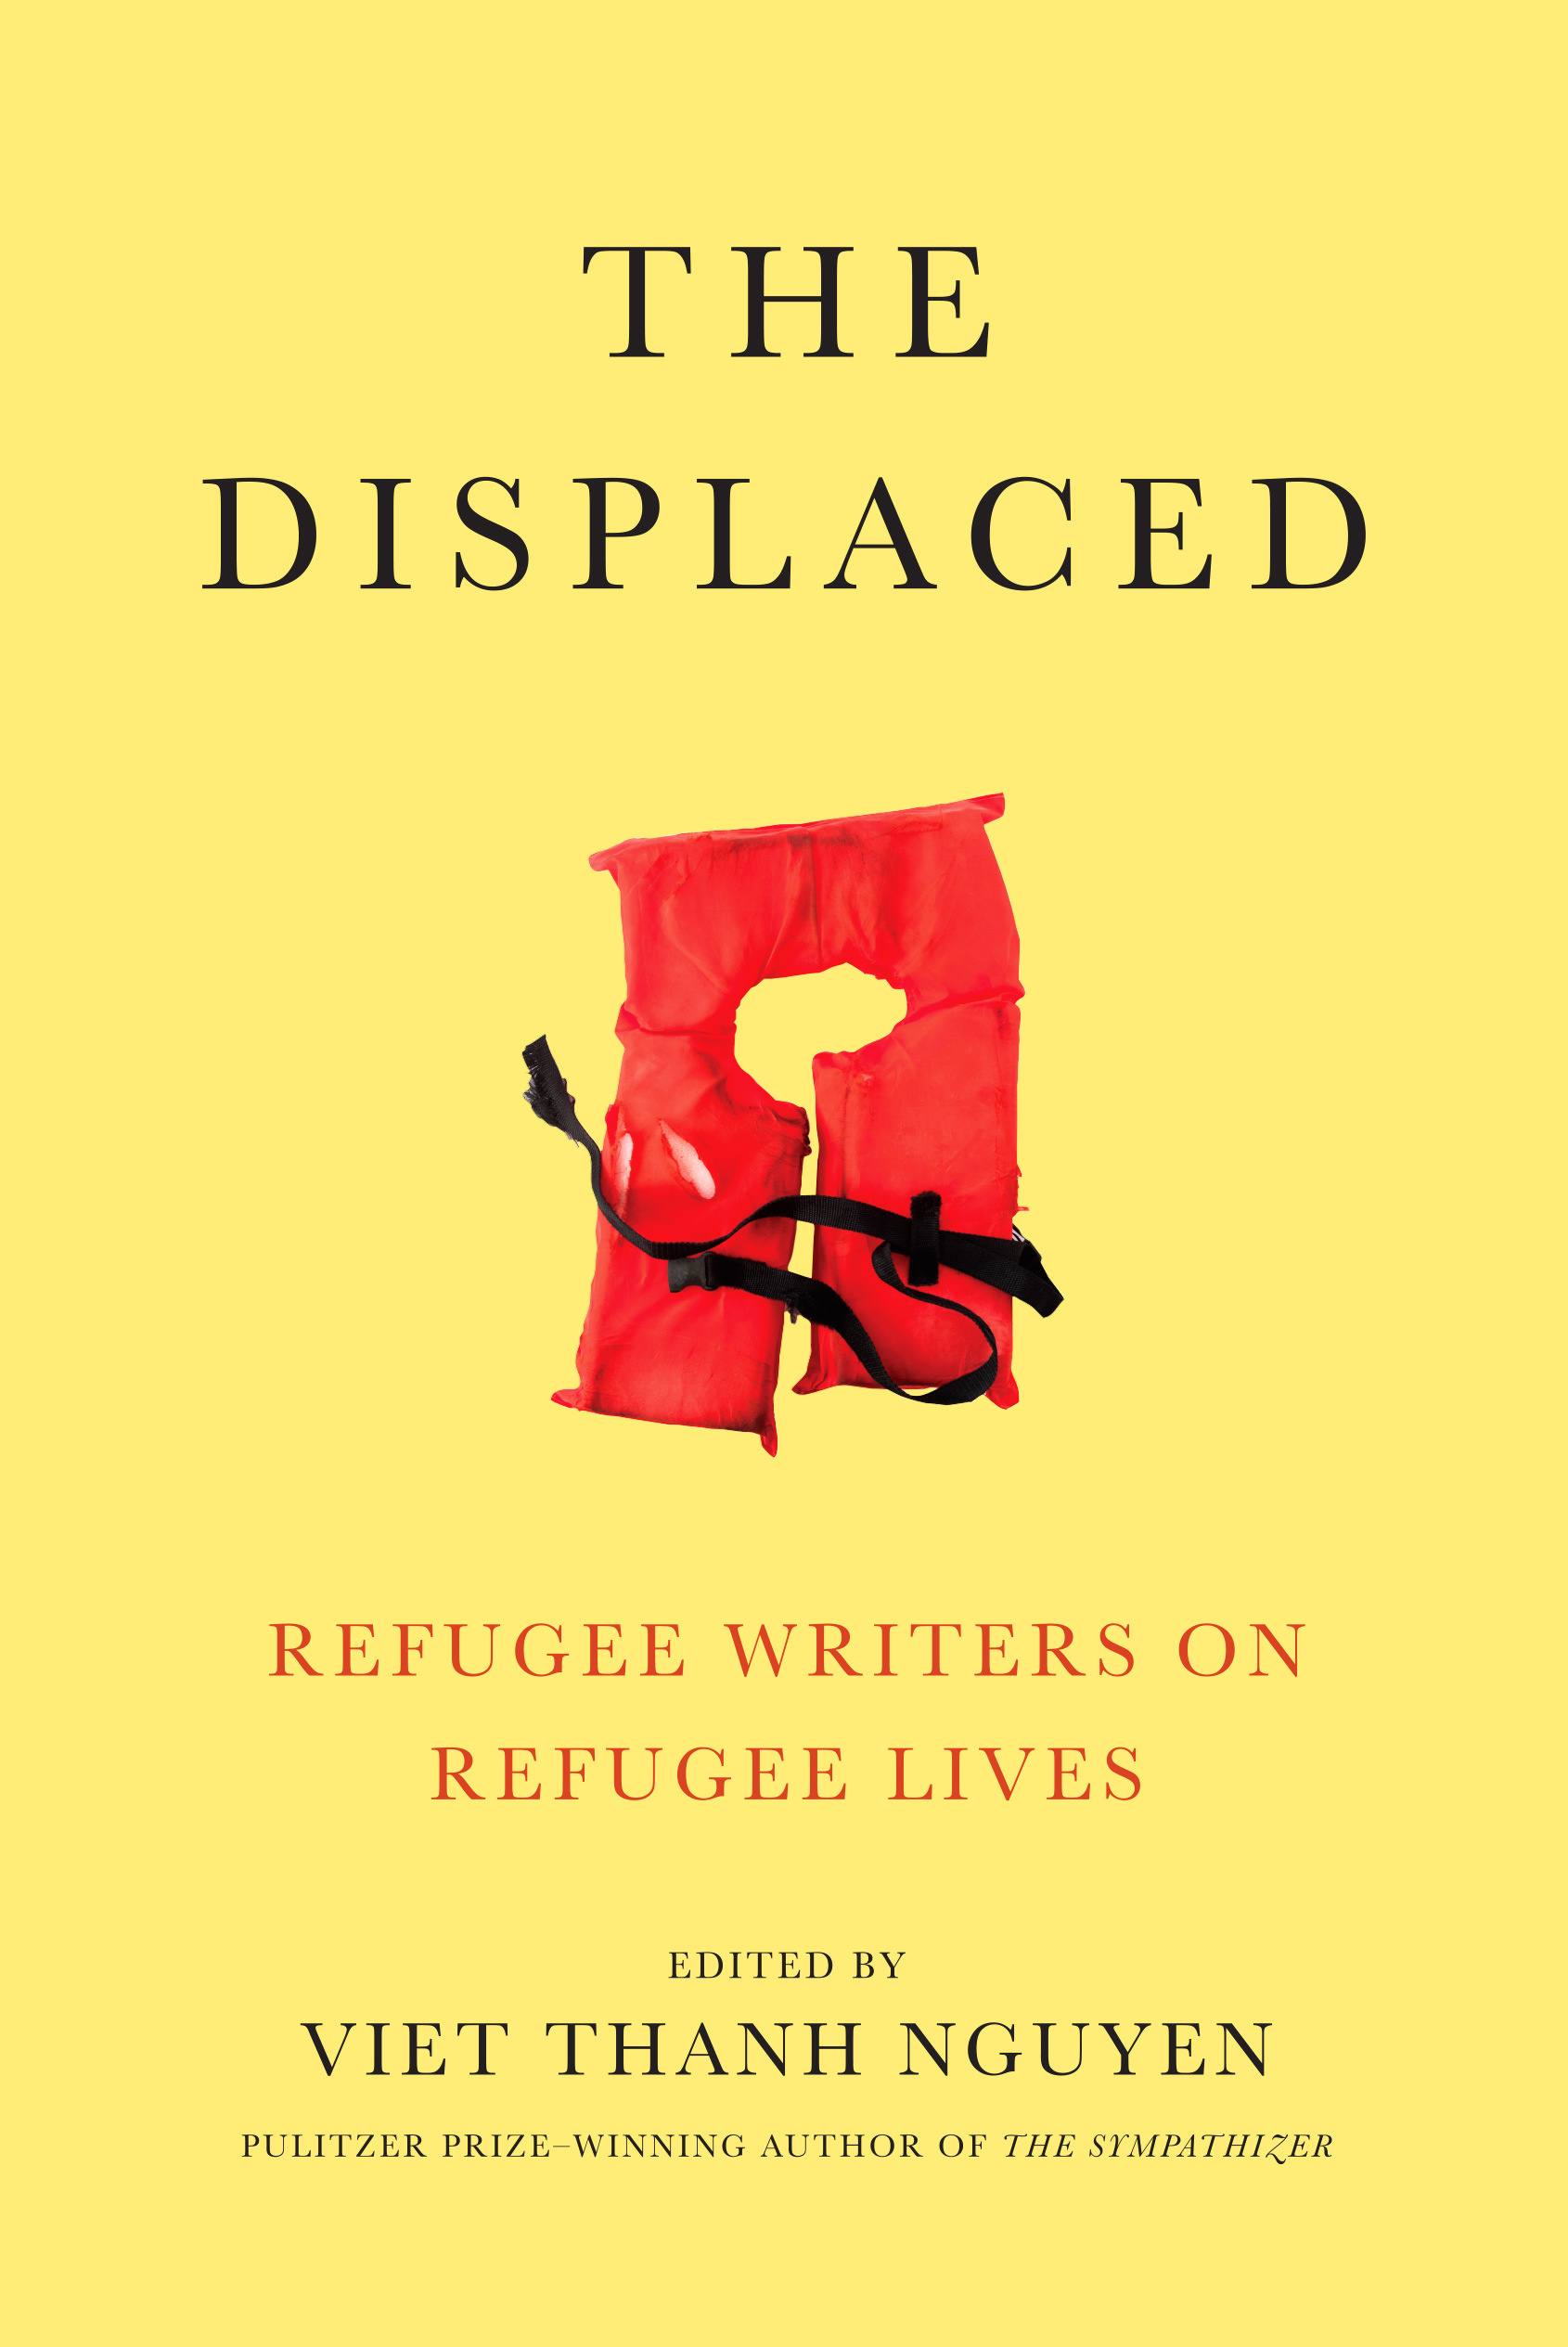 The Displaced book cover